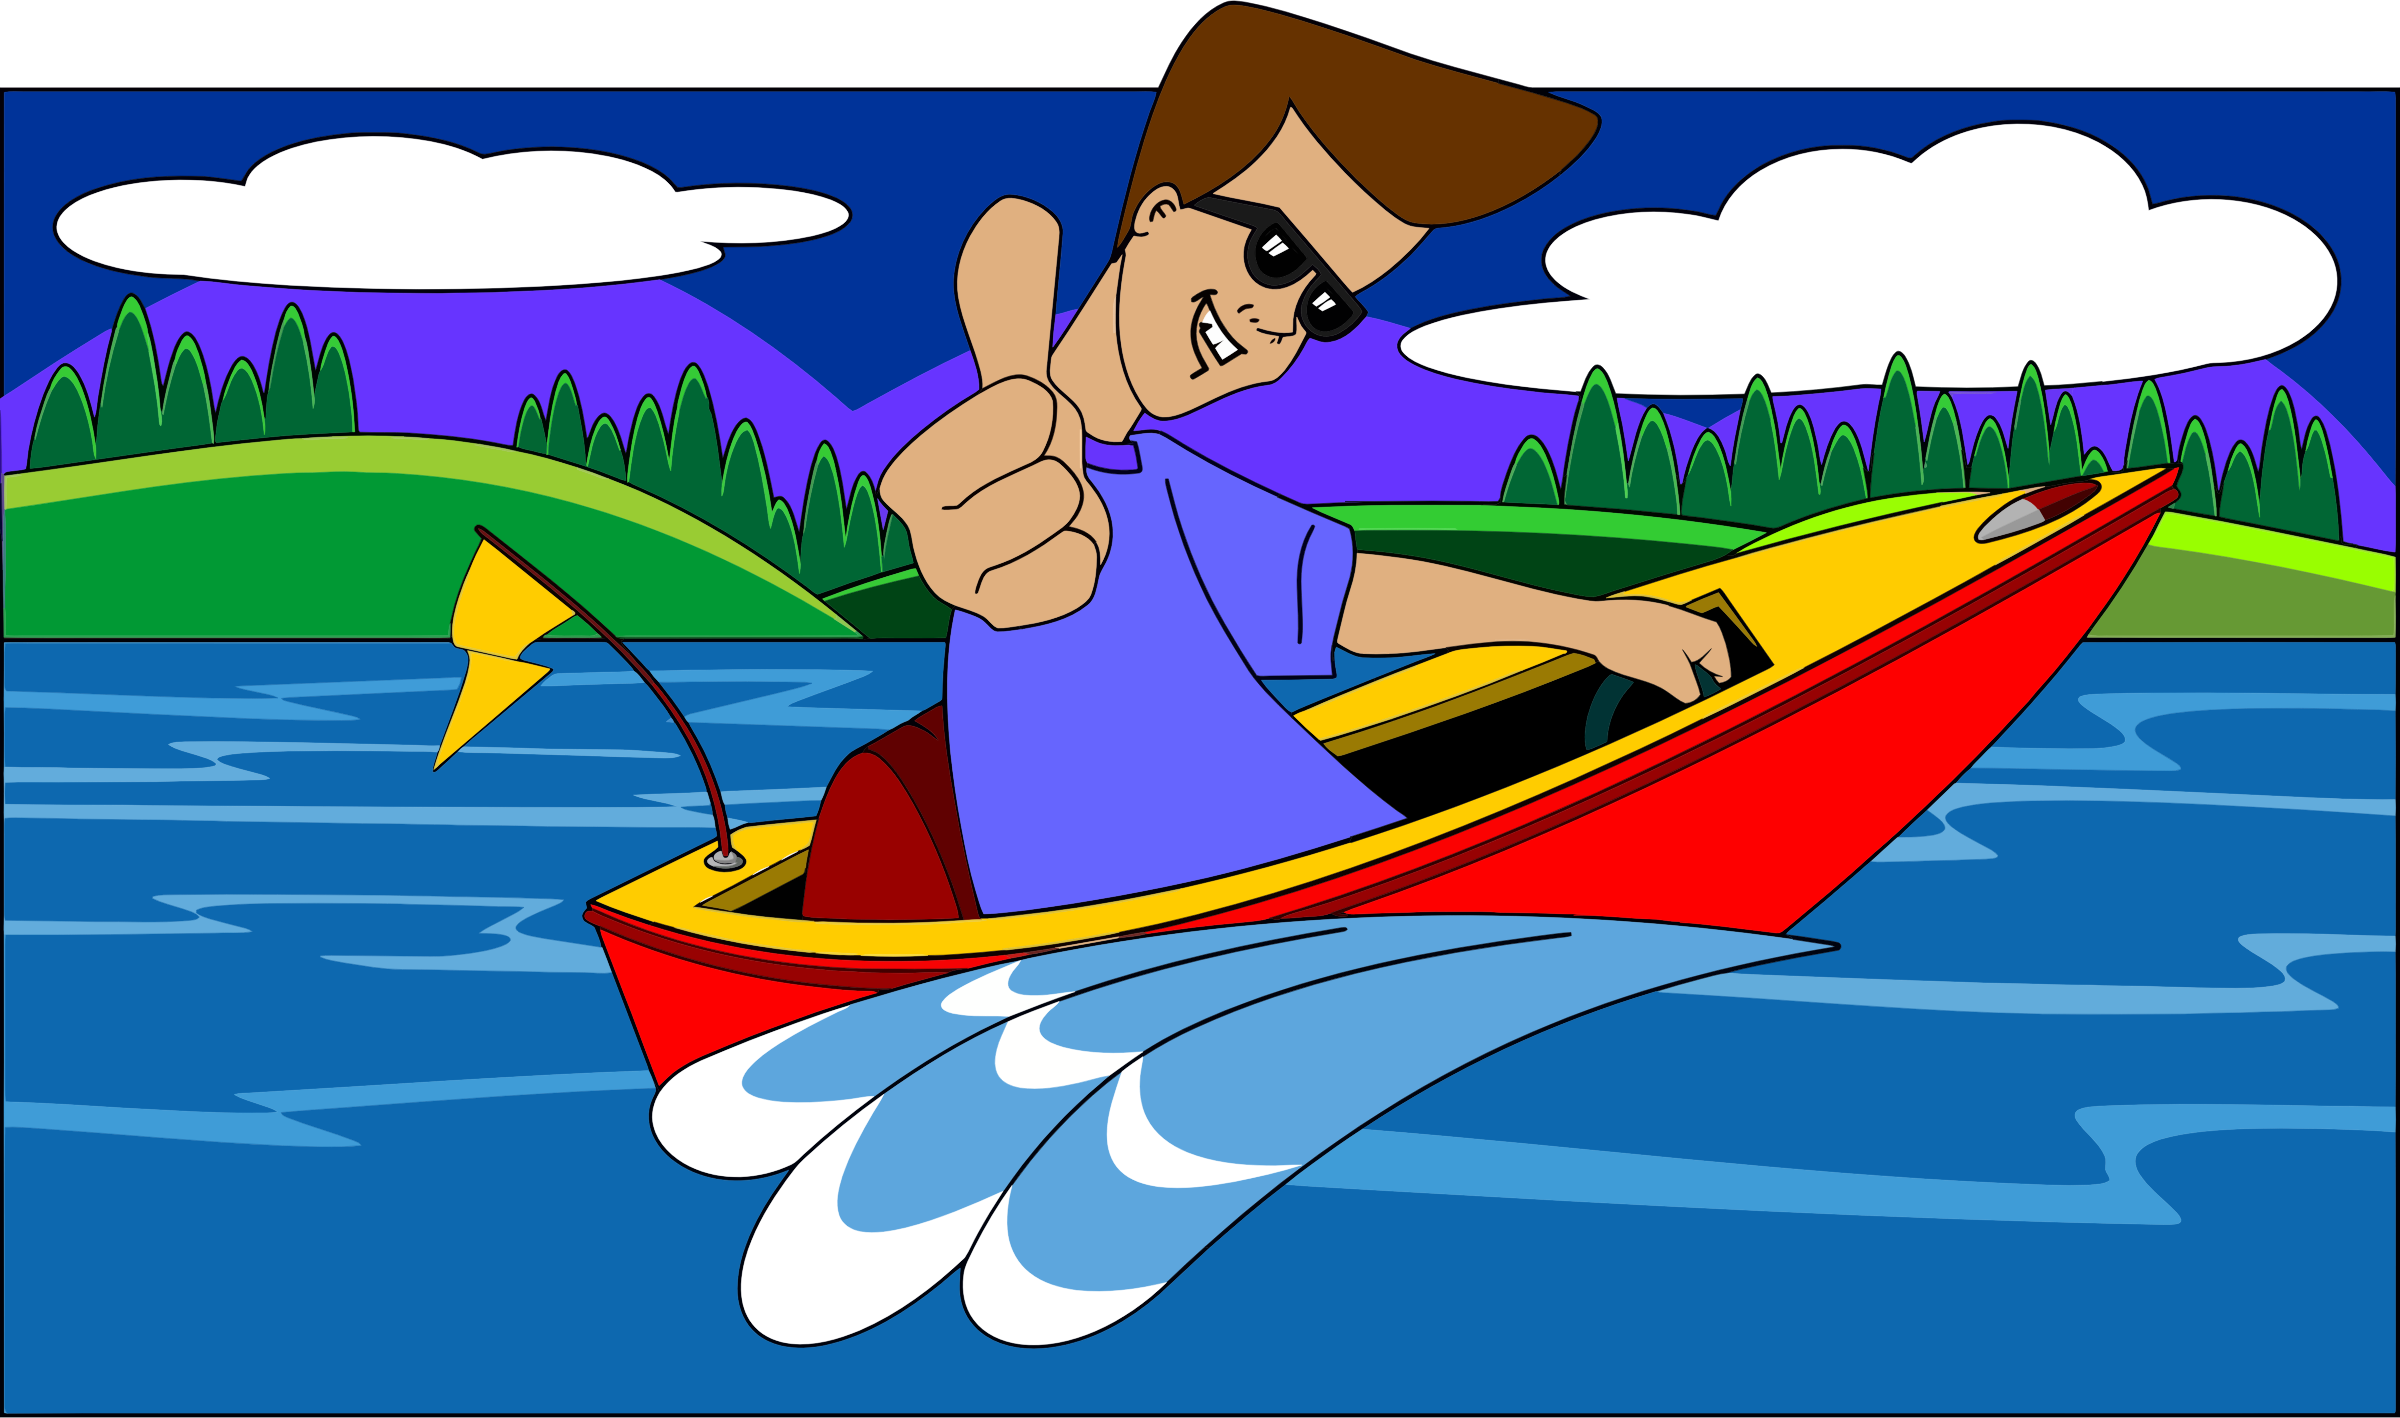 Thumbs Up Boy In Speed Boat With Landscape by GDJ